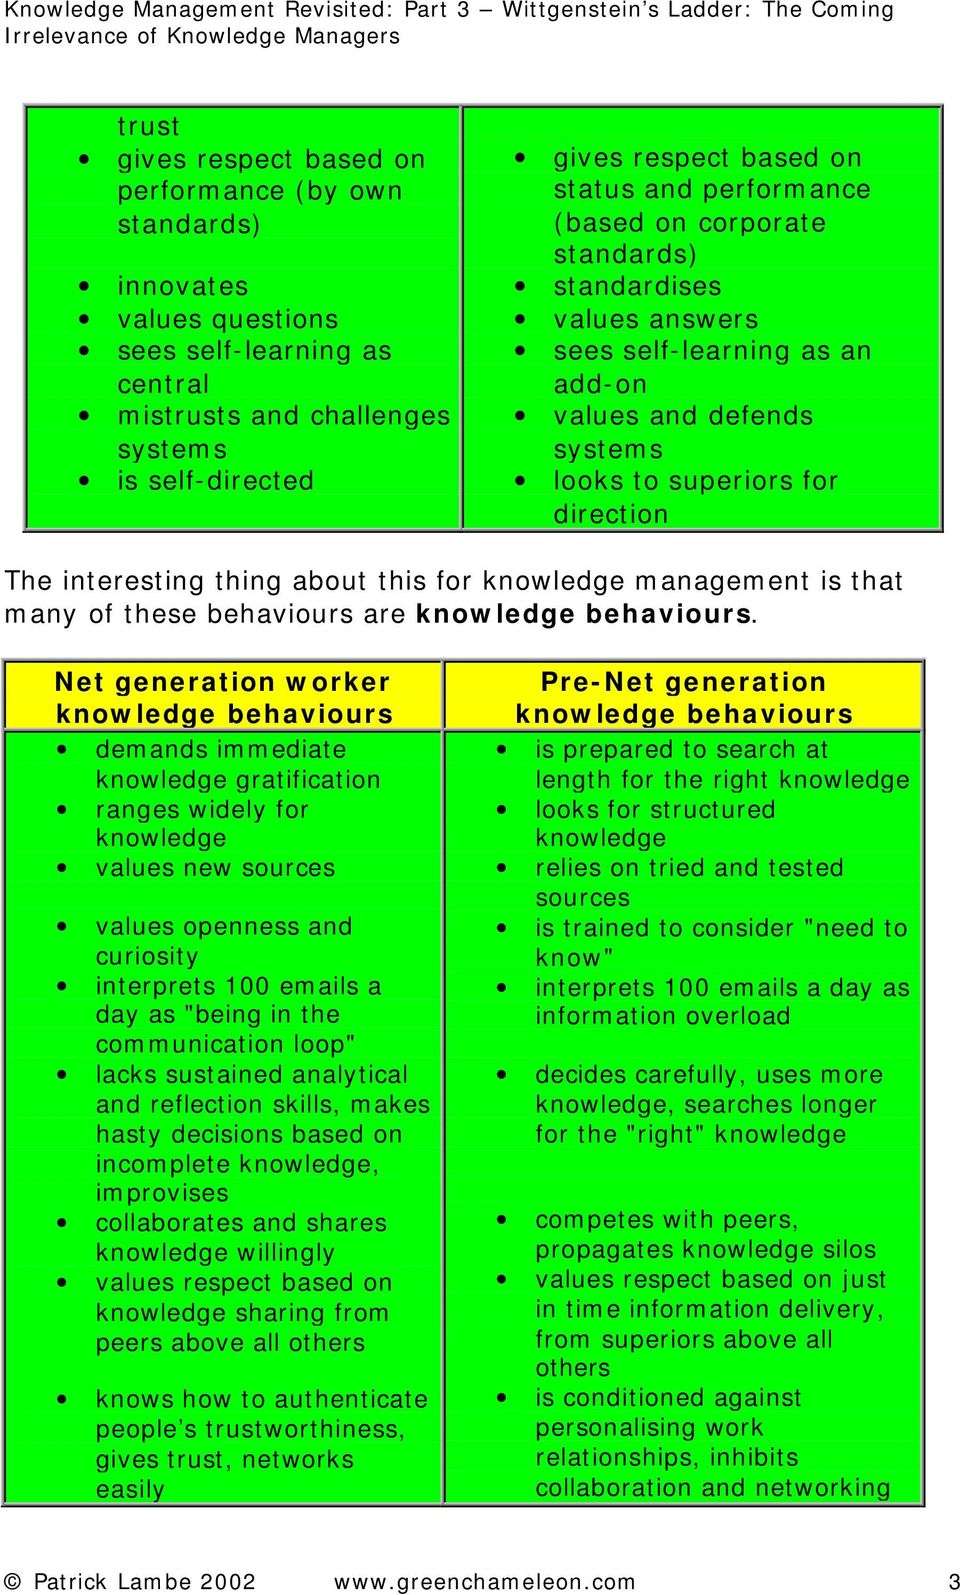 for knowledge management is that many of these behaviours are knowledge behaviours.